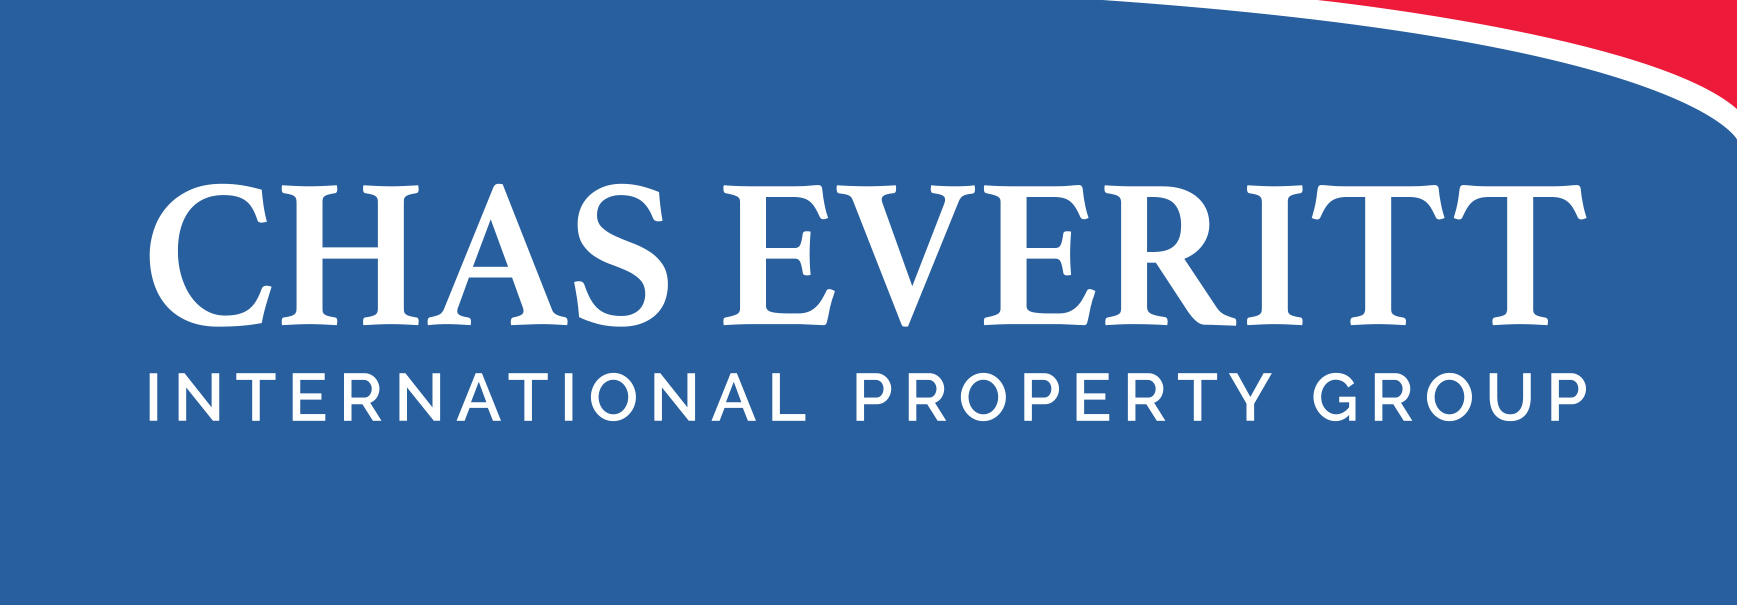 Chas Everitt Property Group